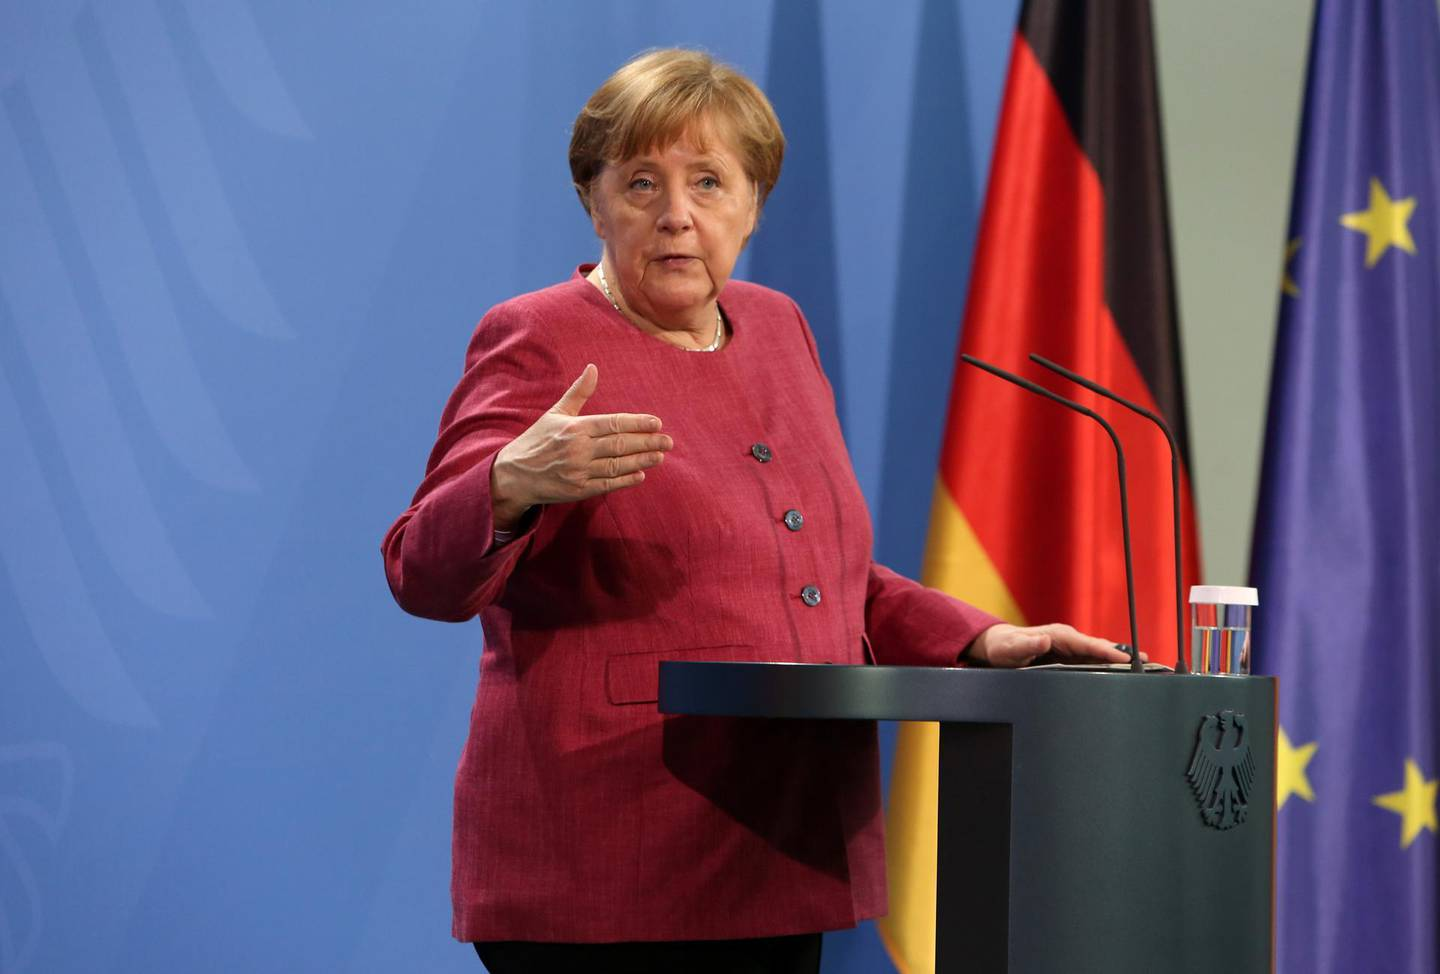 epa09218309 German Chancellor Angela Merkel (CDU) speaks after participating in the Global Health Summit in Berlin, Germany, 21 May 2021. The summit, held in Rome and online amidst the ongoing coronavirus (COVID-19) pandemic as part of Italy's G20 Presidency, is aiming to develop a 'Rome Declaration' with principles to guide multilateral cooperation and action to prevent future global health crises.  EPA/ADAM BERRY / POOL